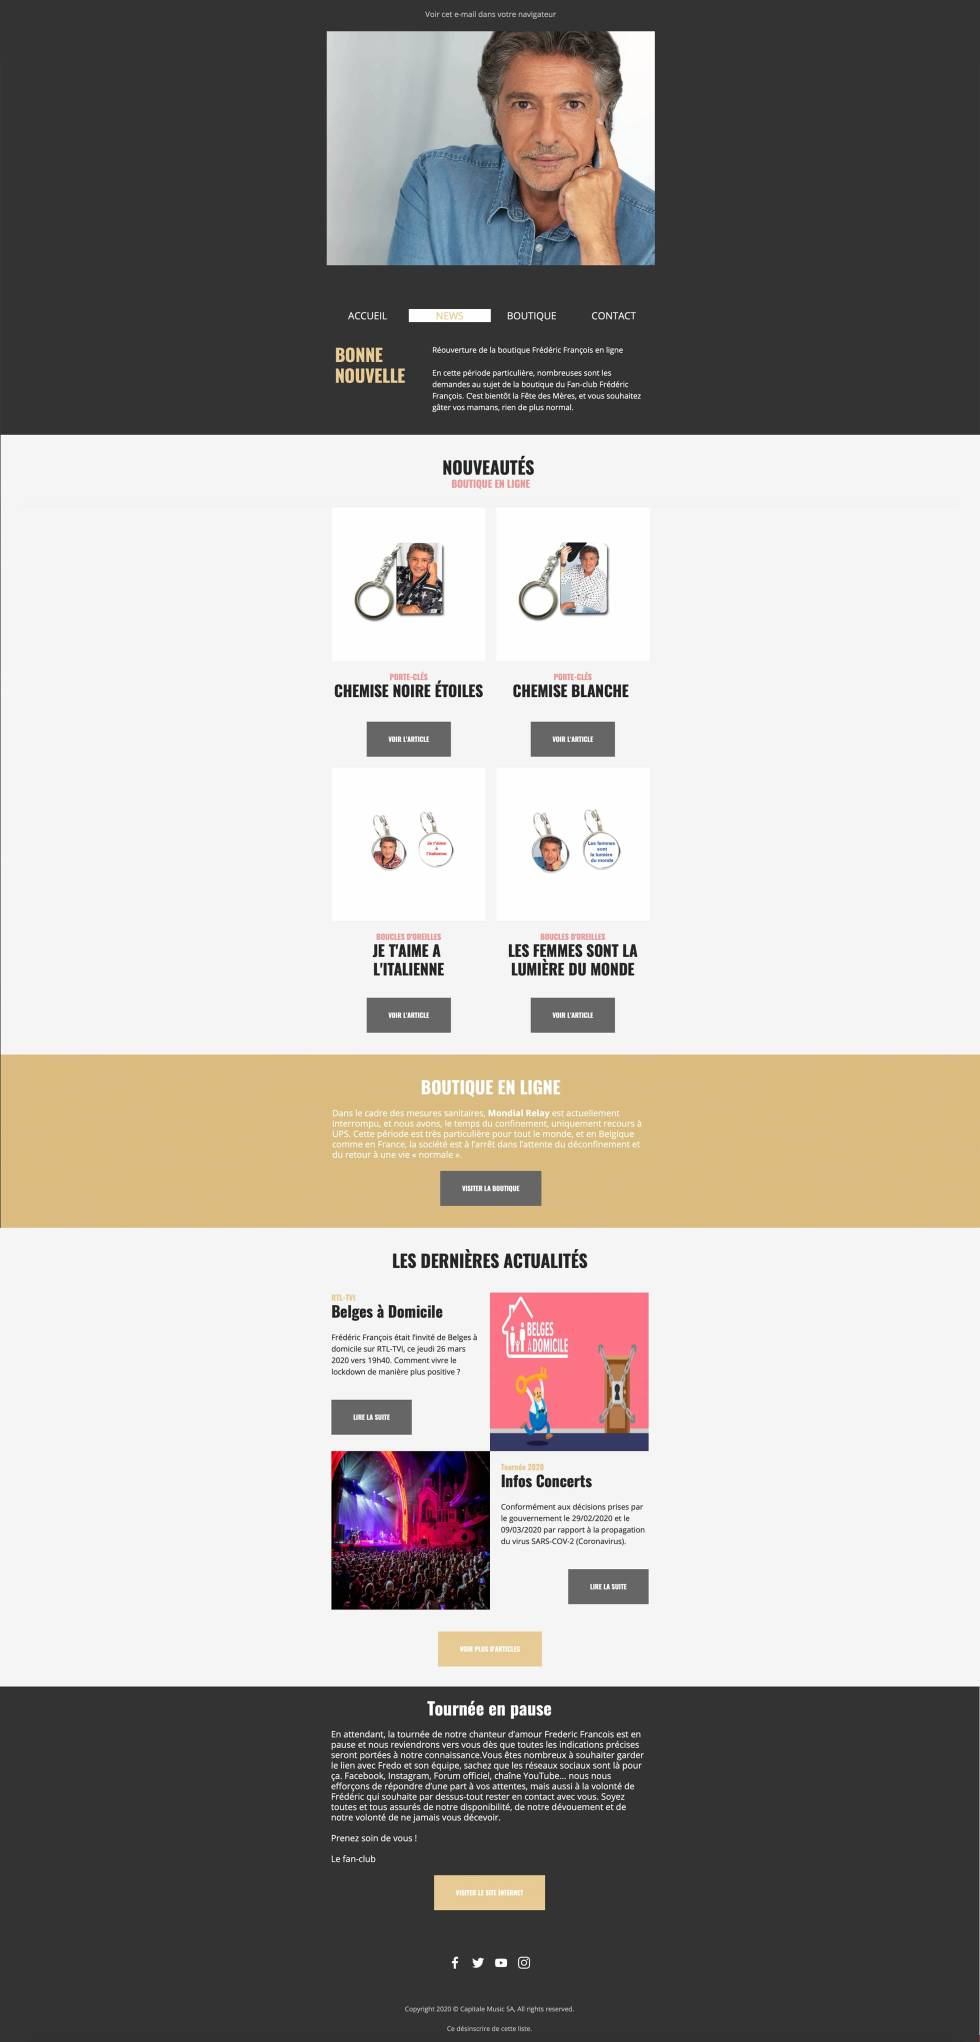 Image of newsletter with items to purchase.